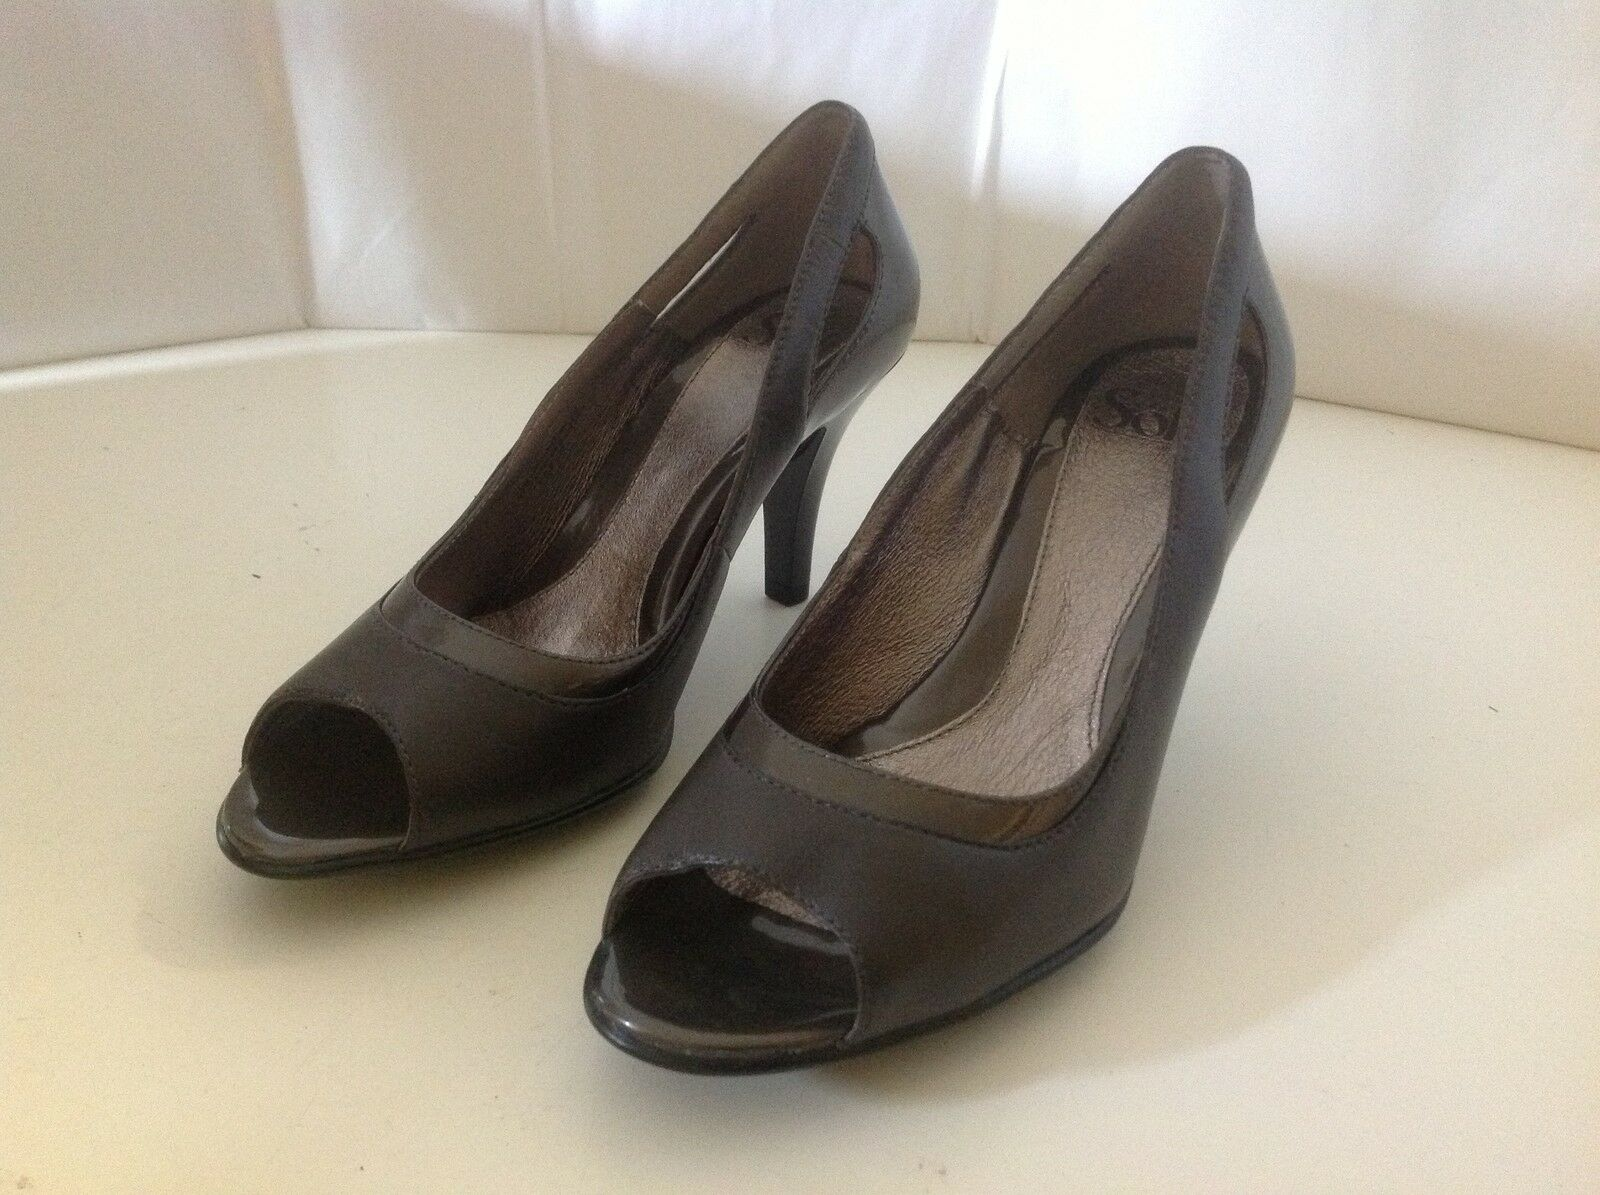 Sofft schuhe GEmini Taupe grau New 8 1 2 M schuhe Sofft Open Peep Toe Leather Heel Pump Patent 16ad2d